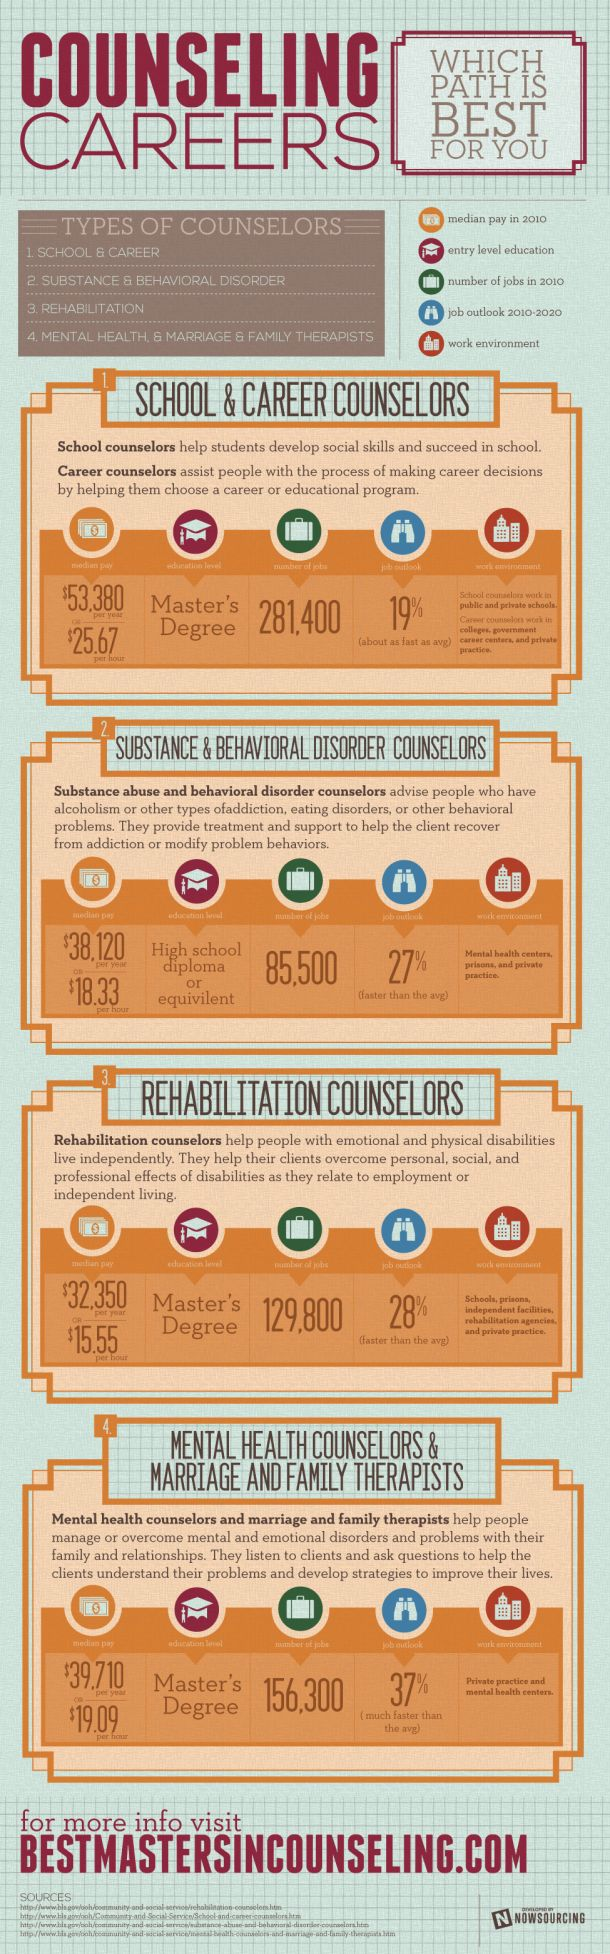 Counseling Careers: Which Path Is Best For You [INFOGRAPHIC] Http://